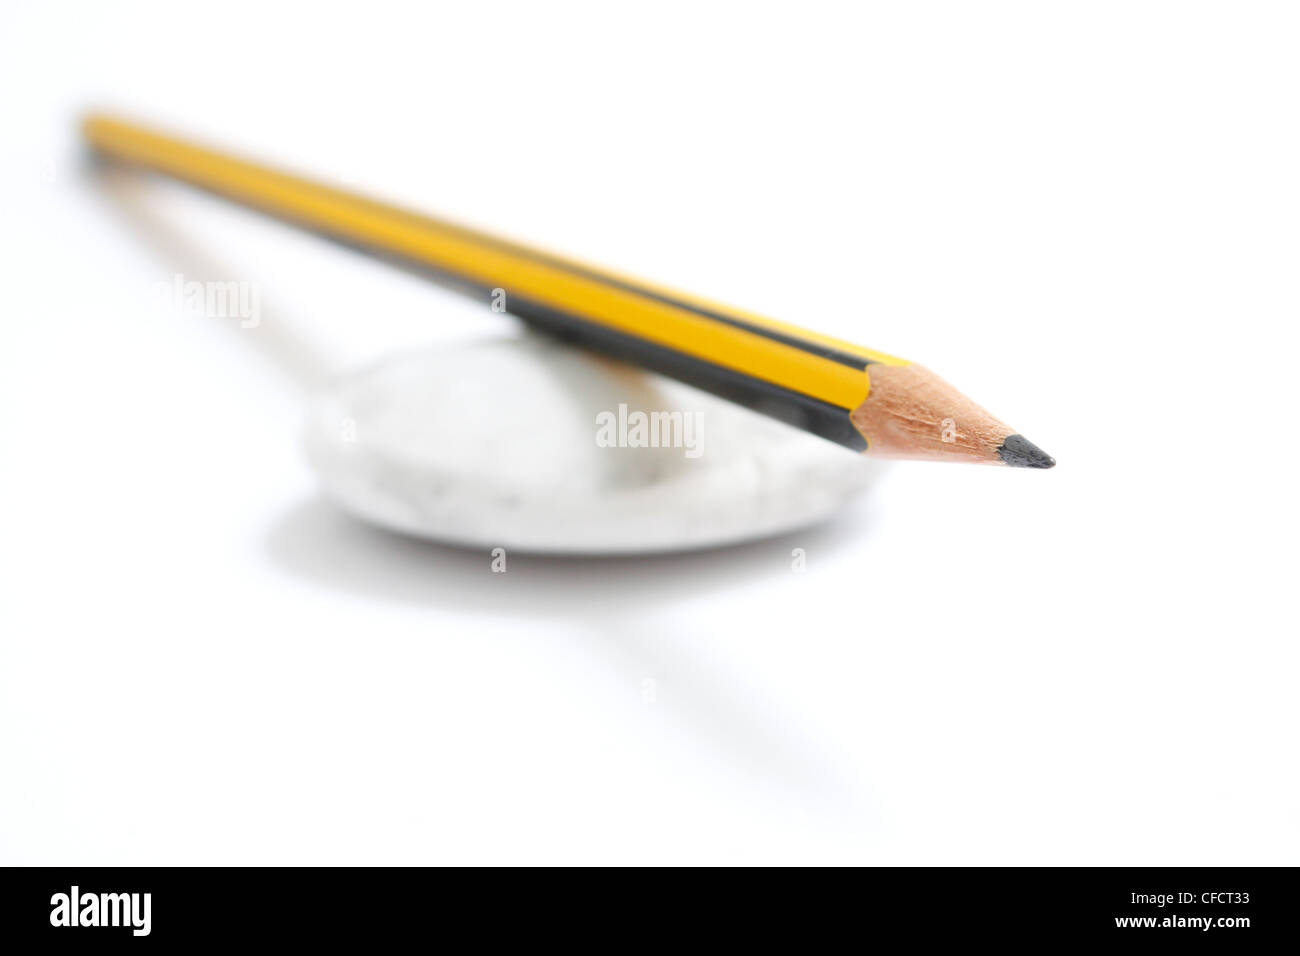 Pencil and rubber - Stock Image